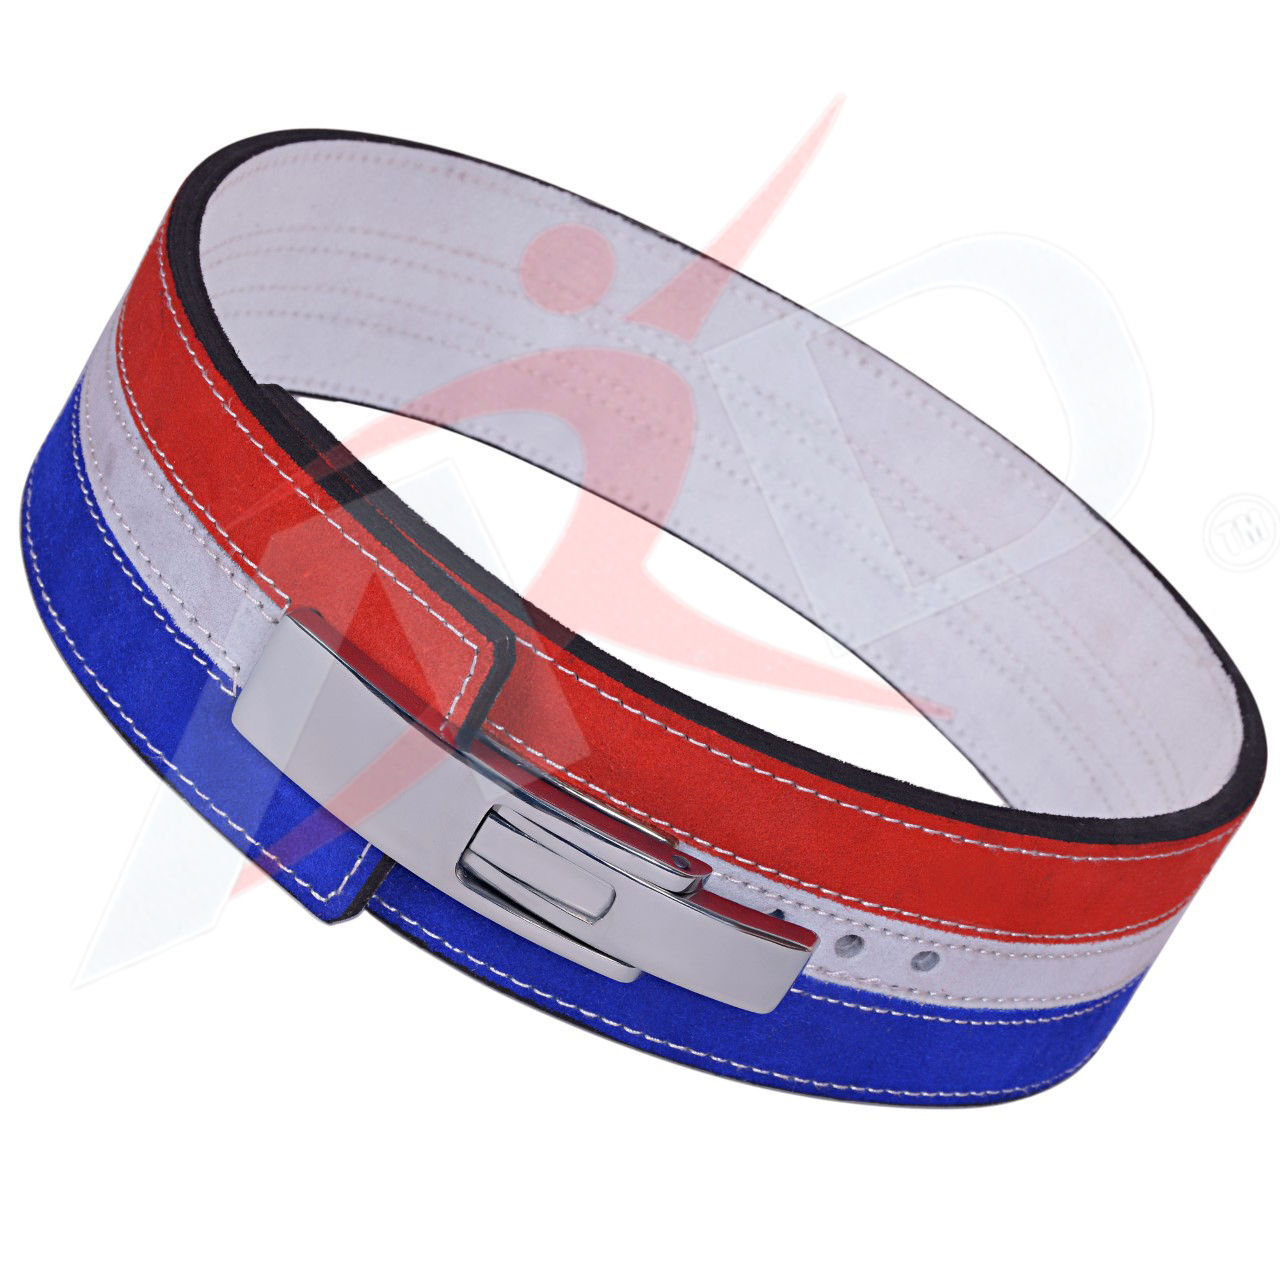 ARD CHAMPS™ Weight Power Lifting Leather Lever Pro Belt Gym Training Red-White-Blue Xtra Small